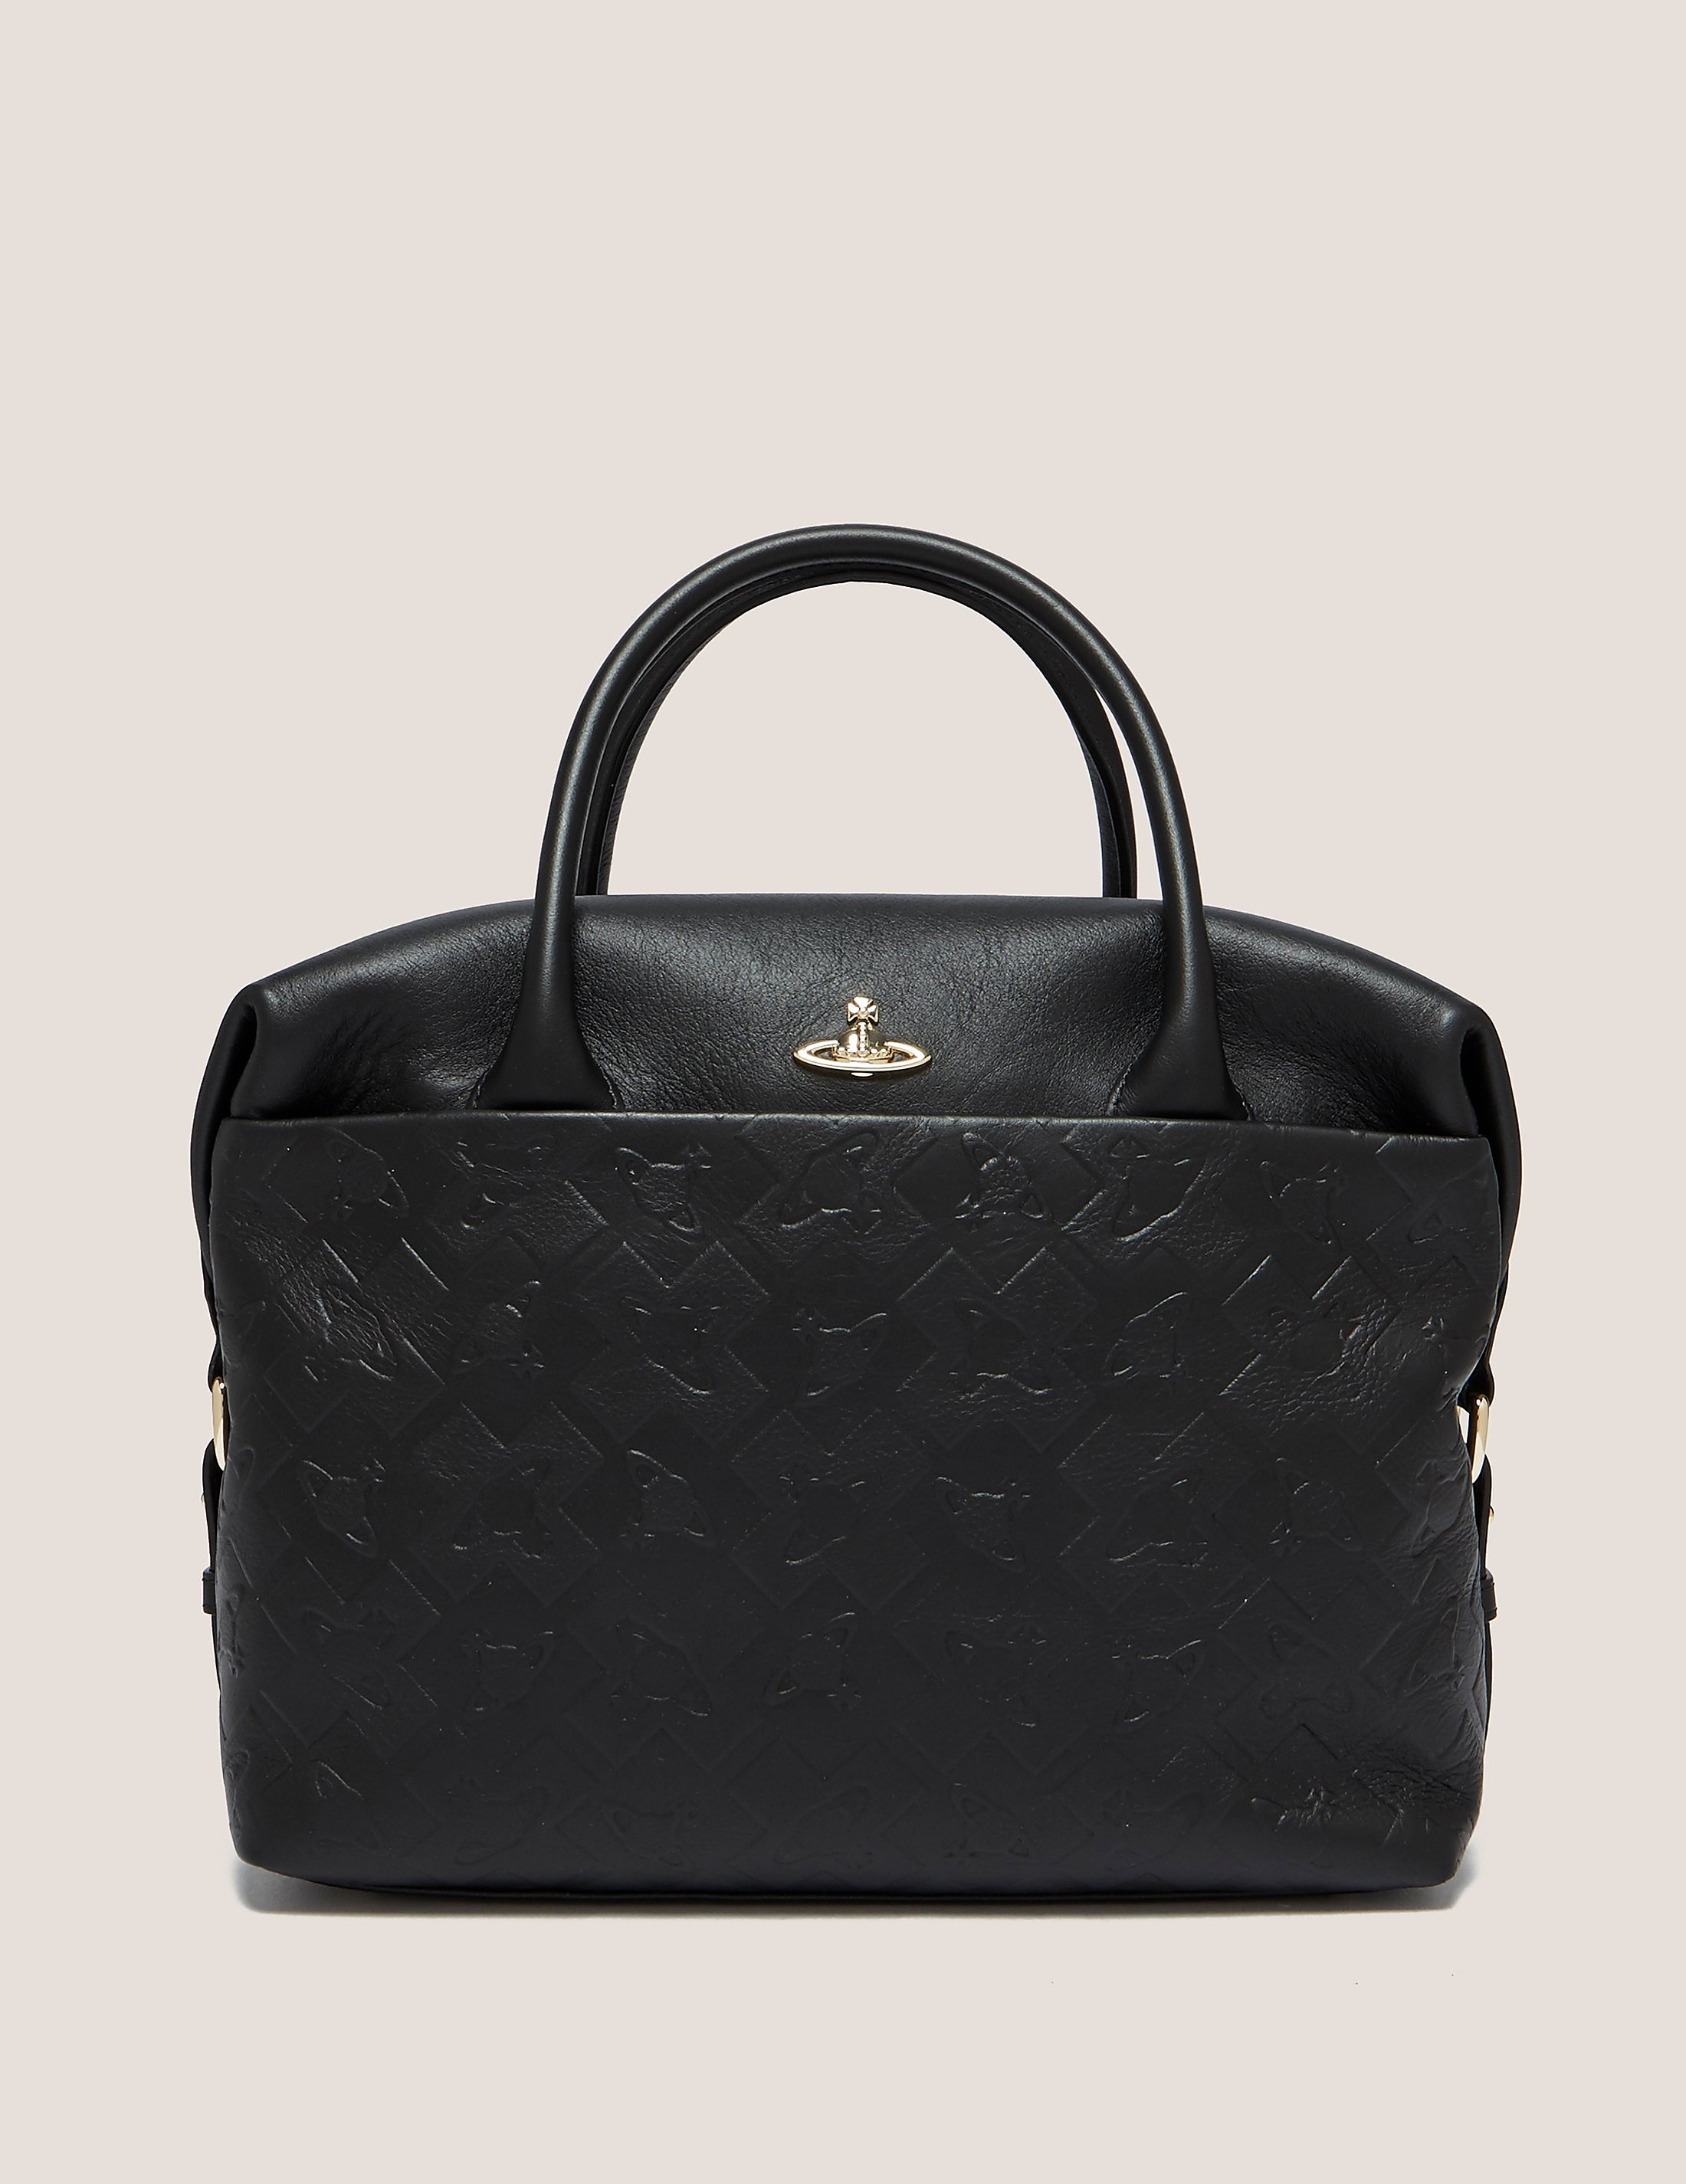 Vivienne Westwood Harrow Small Bag